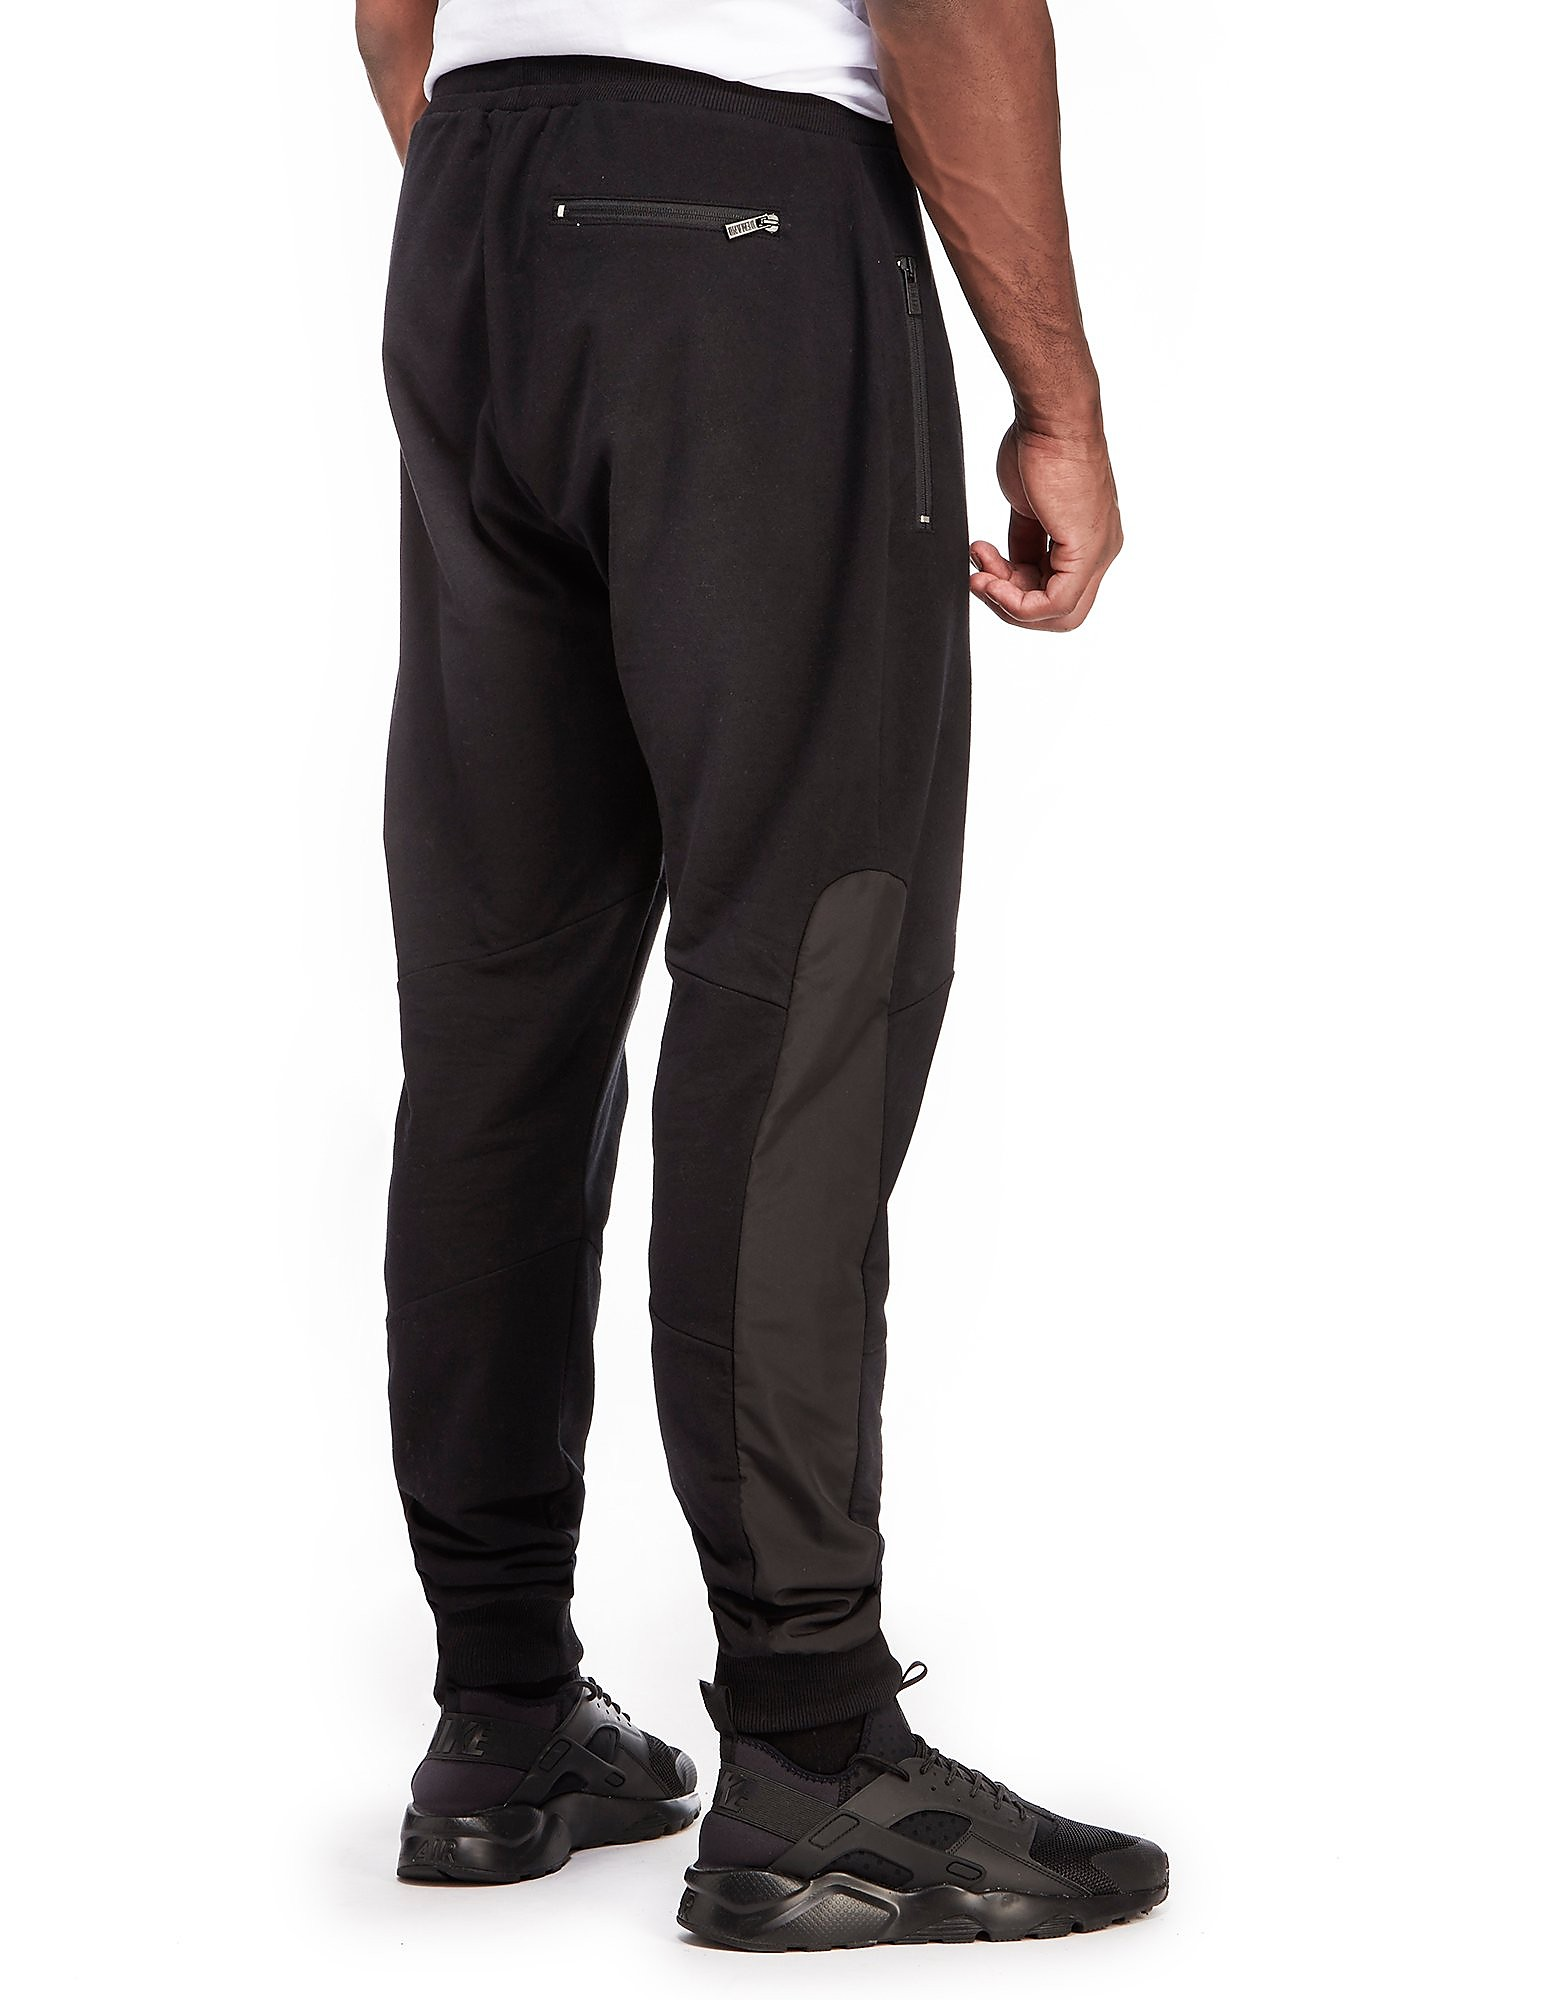 Supply & Demand x Bugzy Malone Groggy Joggers PRE-ORDER